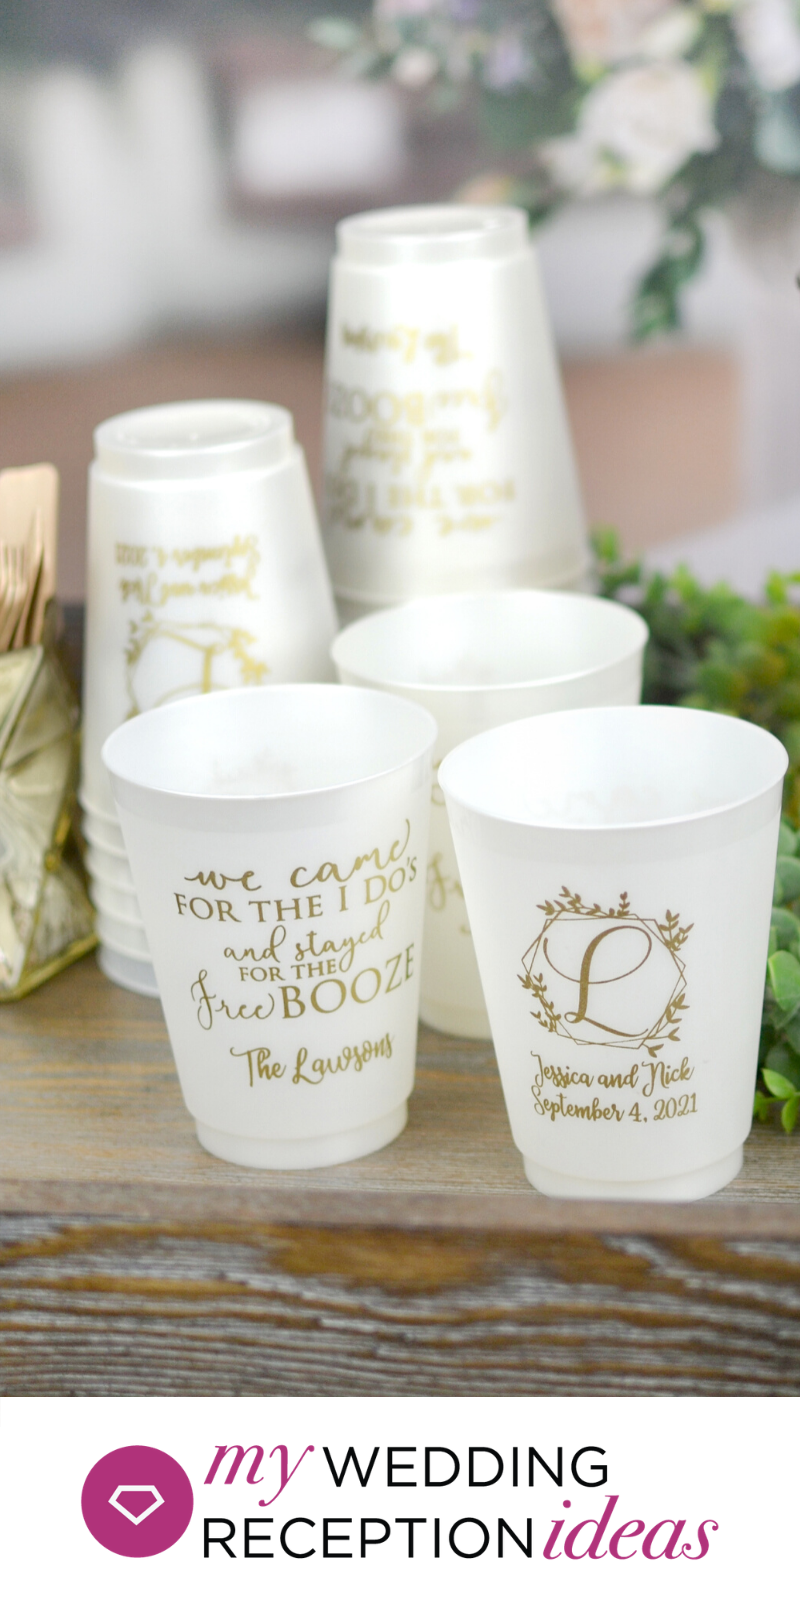 16 Oz Personalized Color Frosted Geometric Wreath Initial Cups In 2020 Wedding Cups Personalized Wedding Plastic Cups Frosted Wedding Cups